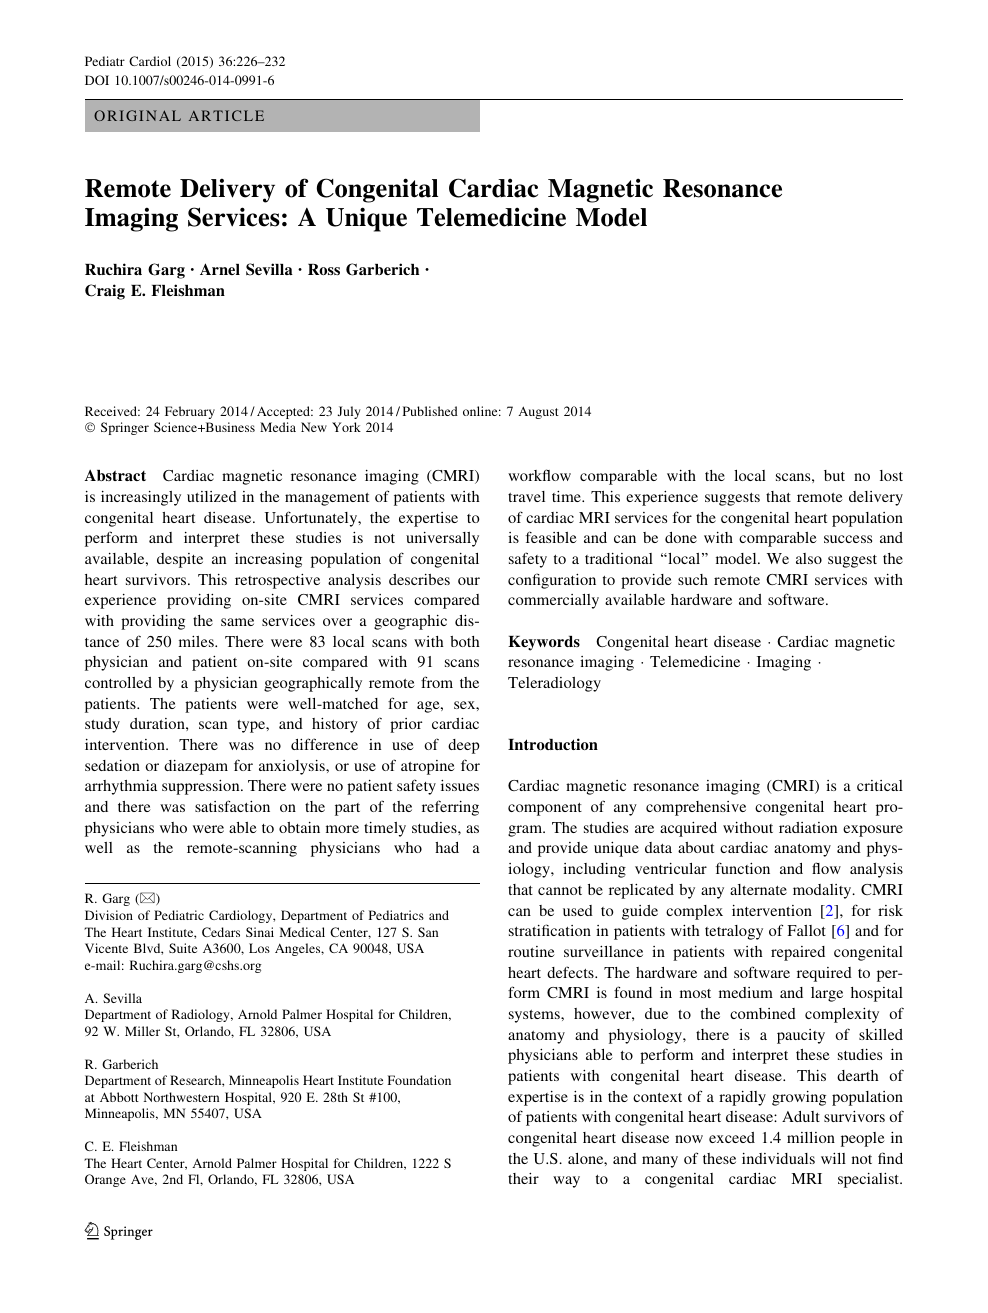 Remote Delivery of Congenital Cardiac Magnetic Resonance Imaging